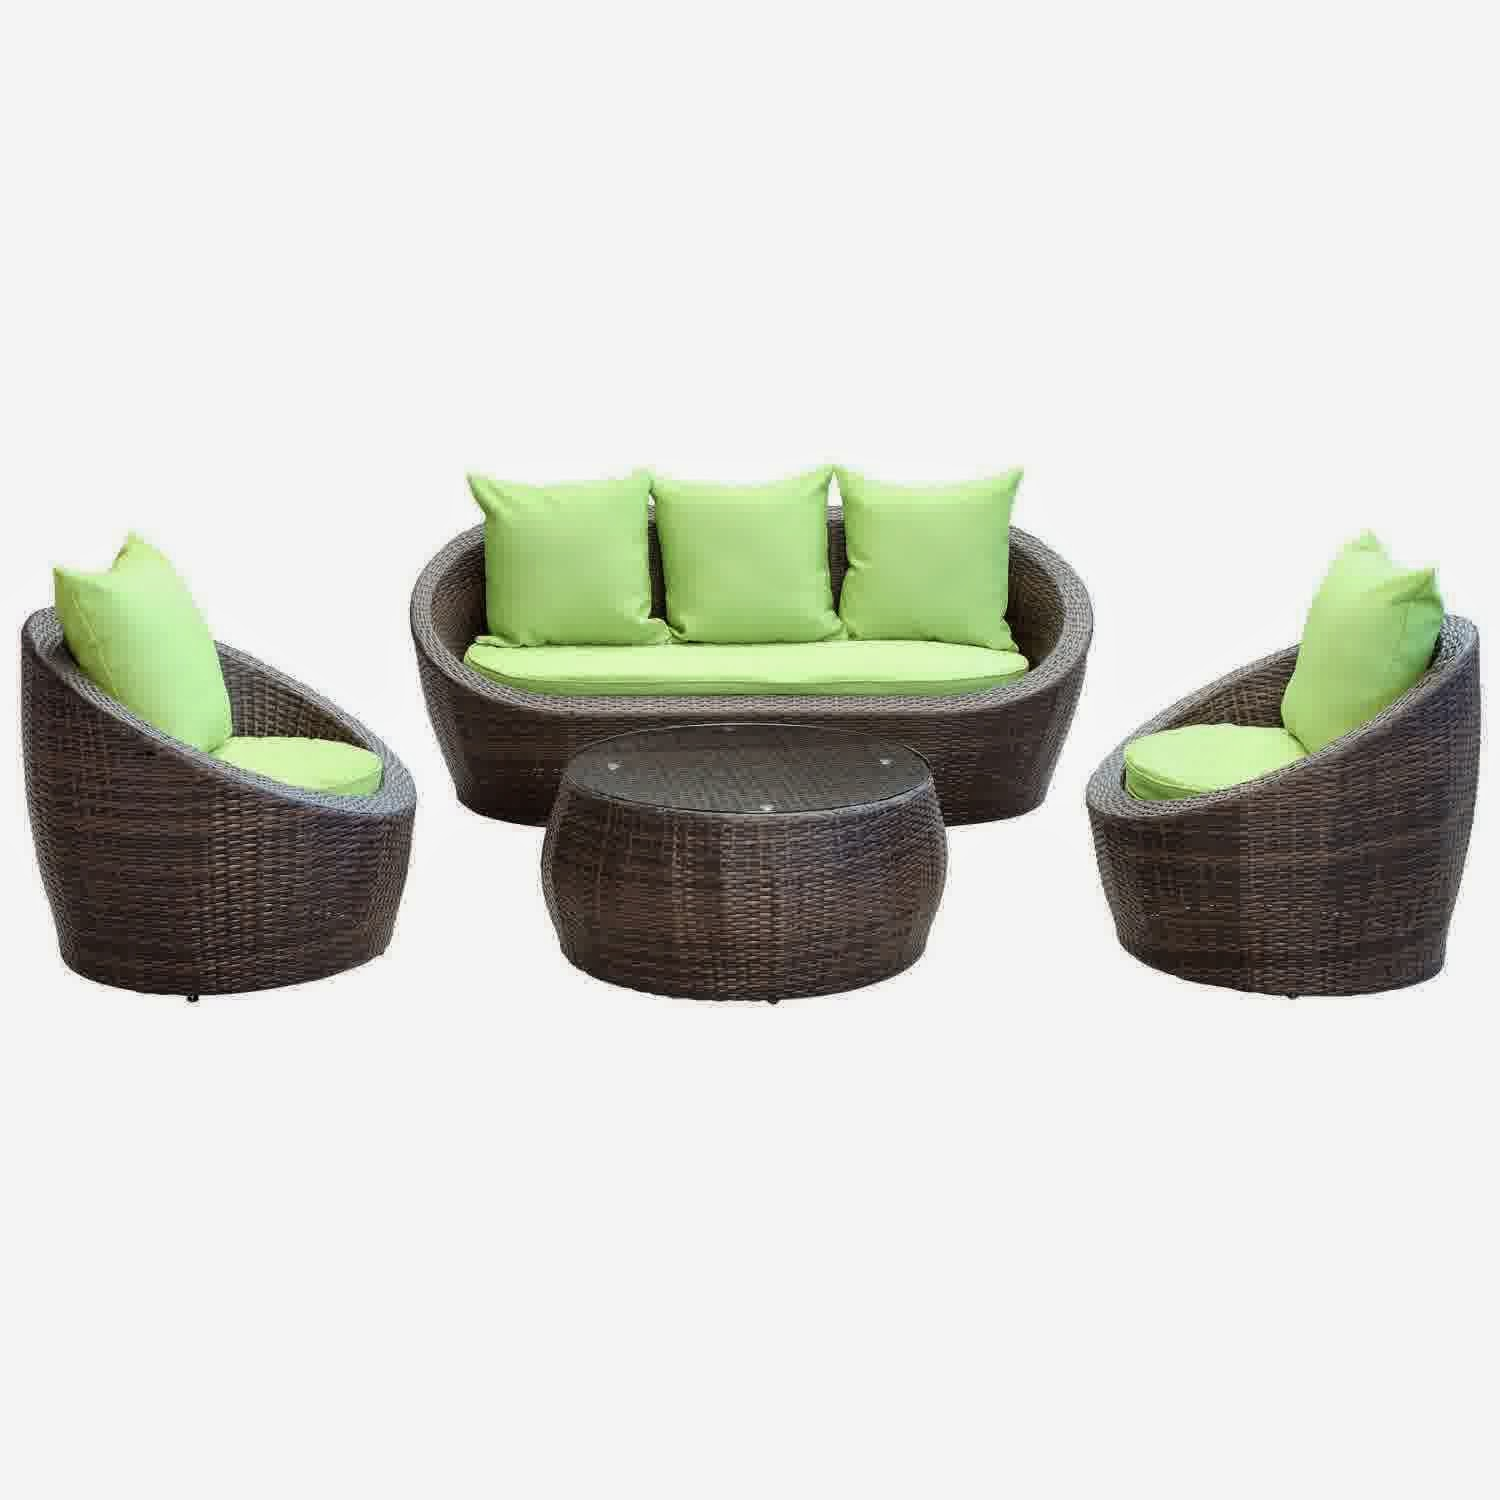 4 piece wicker patio set patio design ideas for Outdoor furniture 4 piece